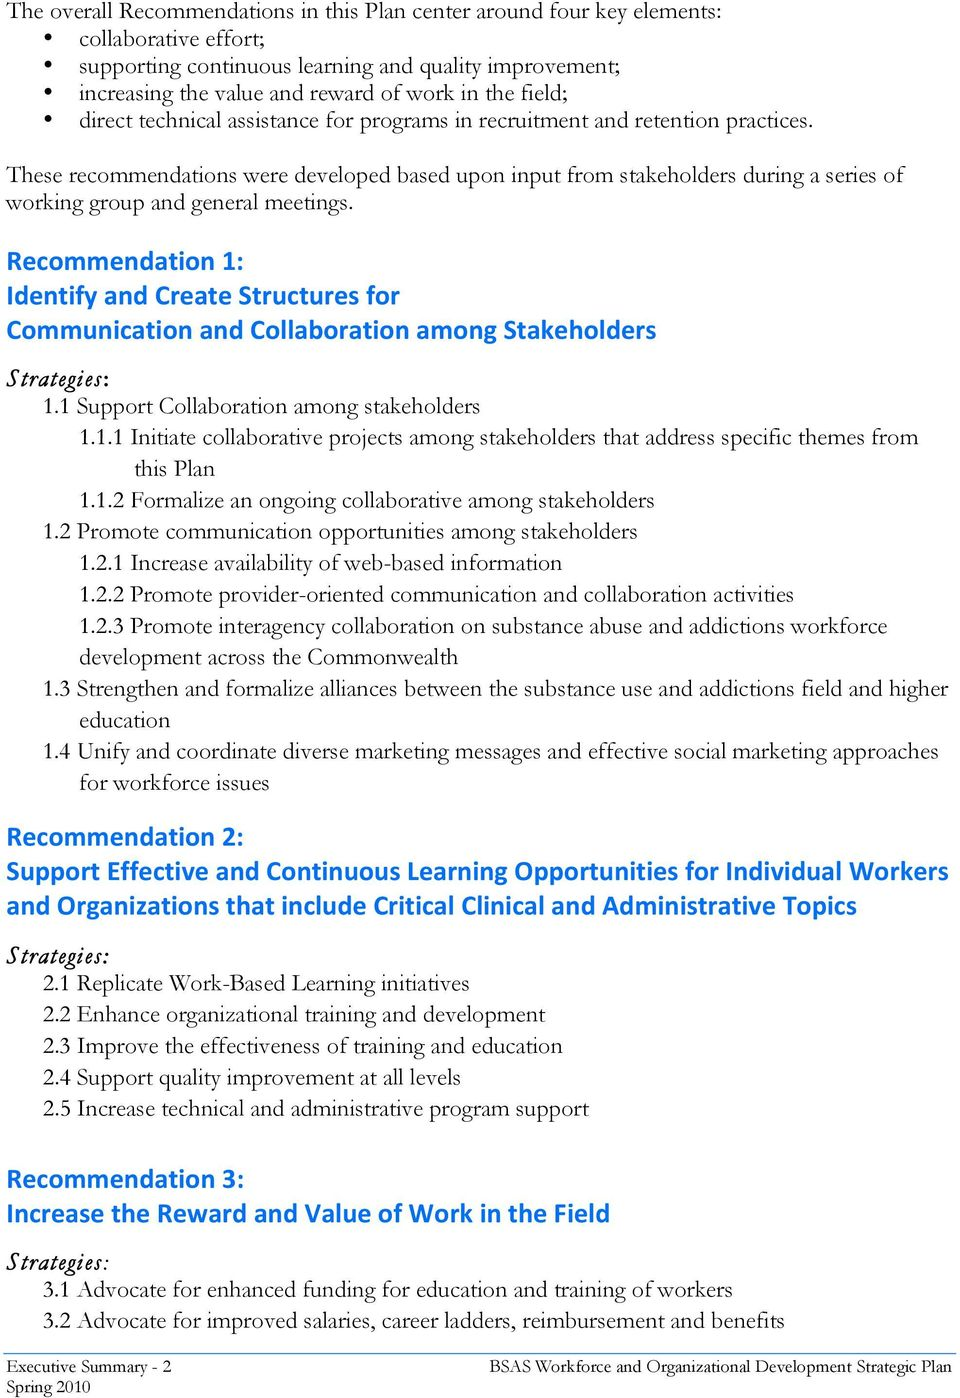 These recommendations were developed based upon input from stakeholders during a series of working group and general meetings.